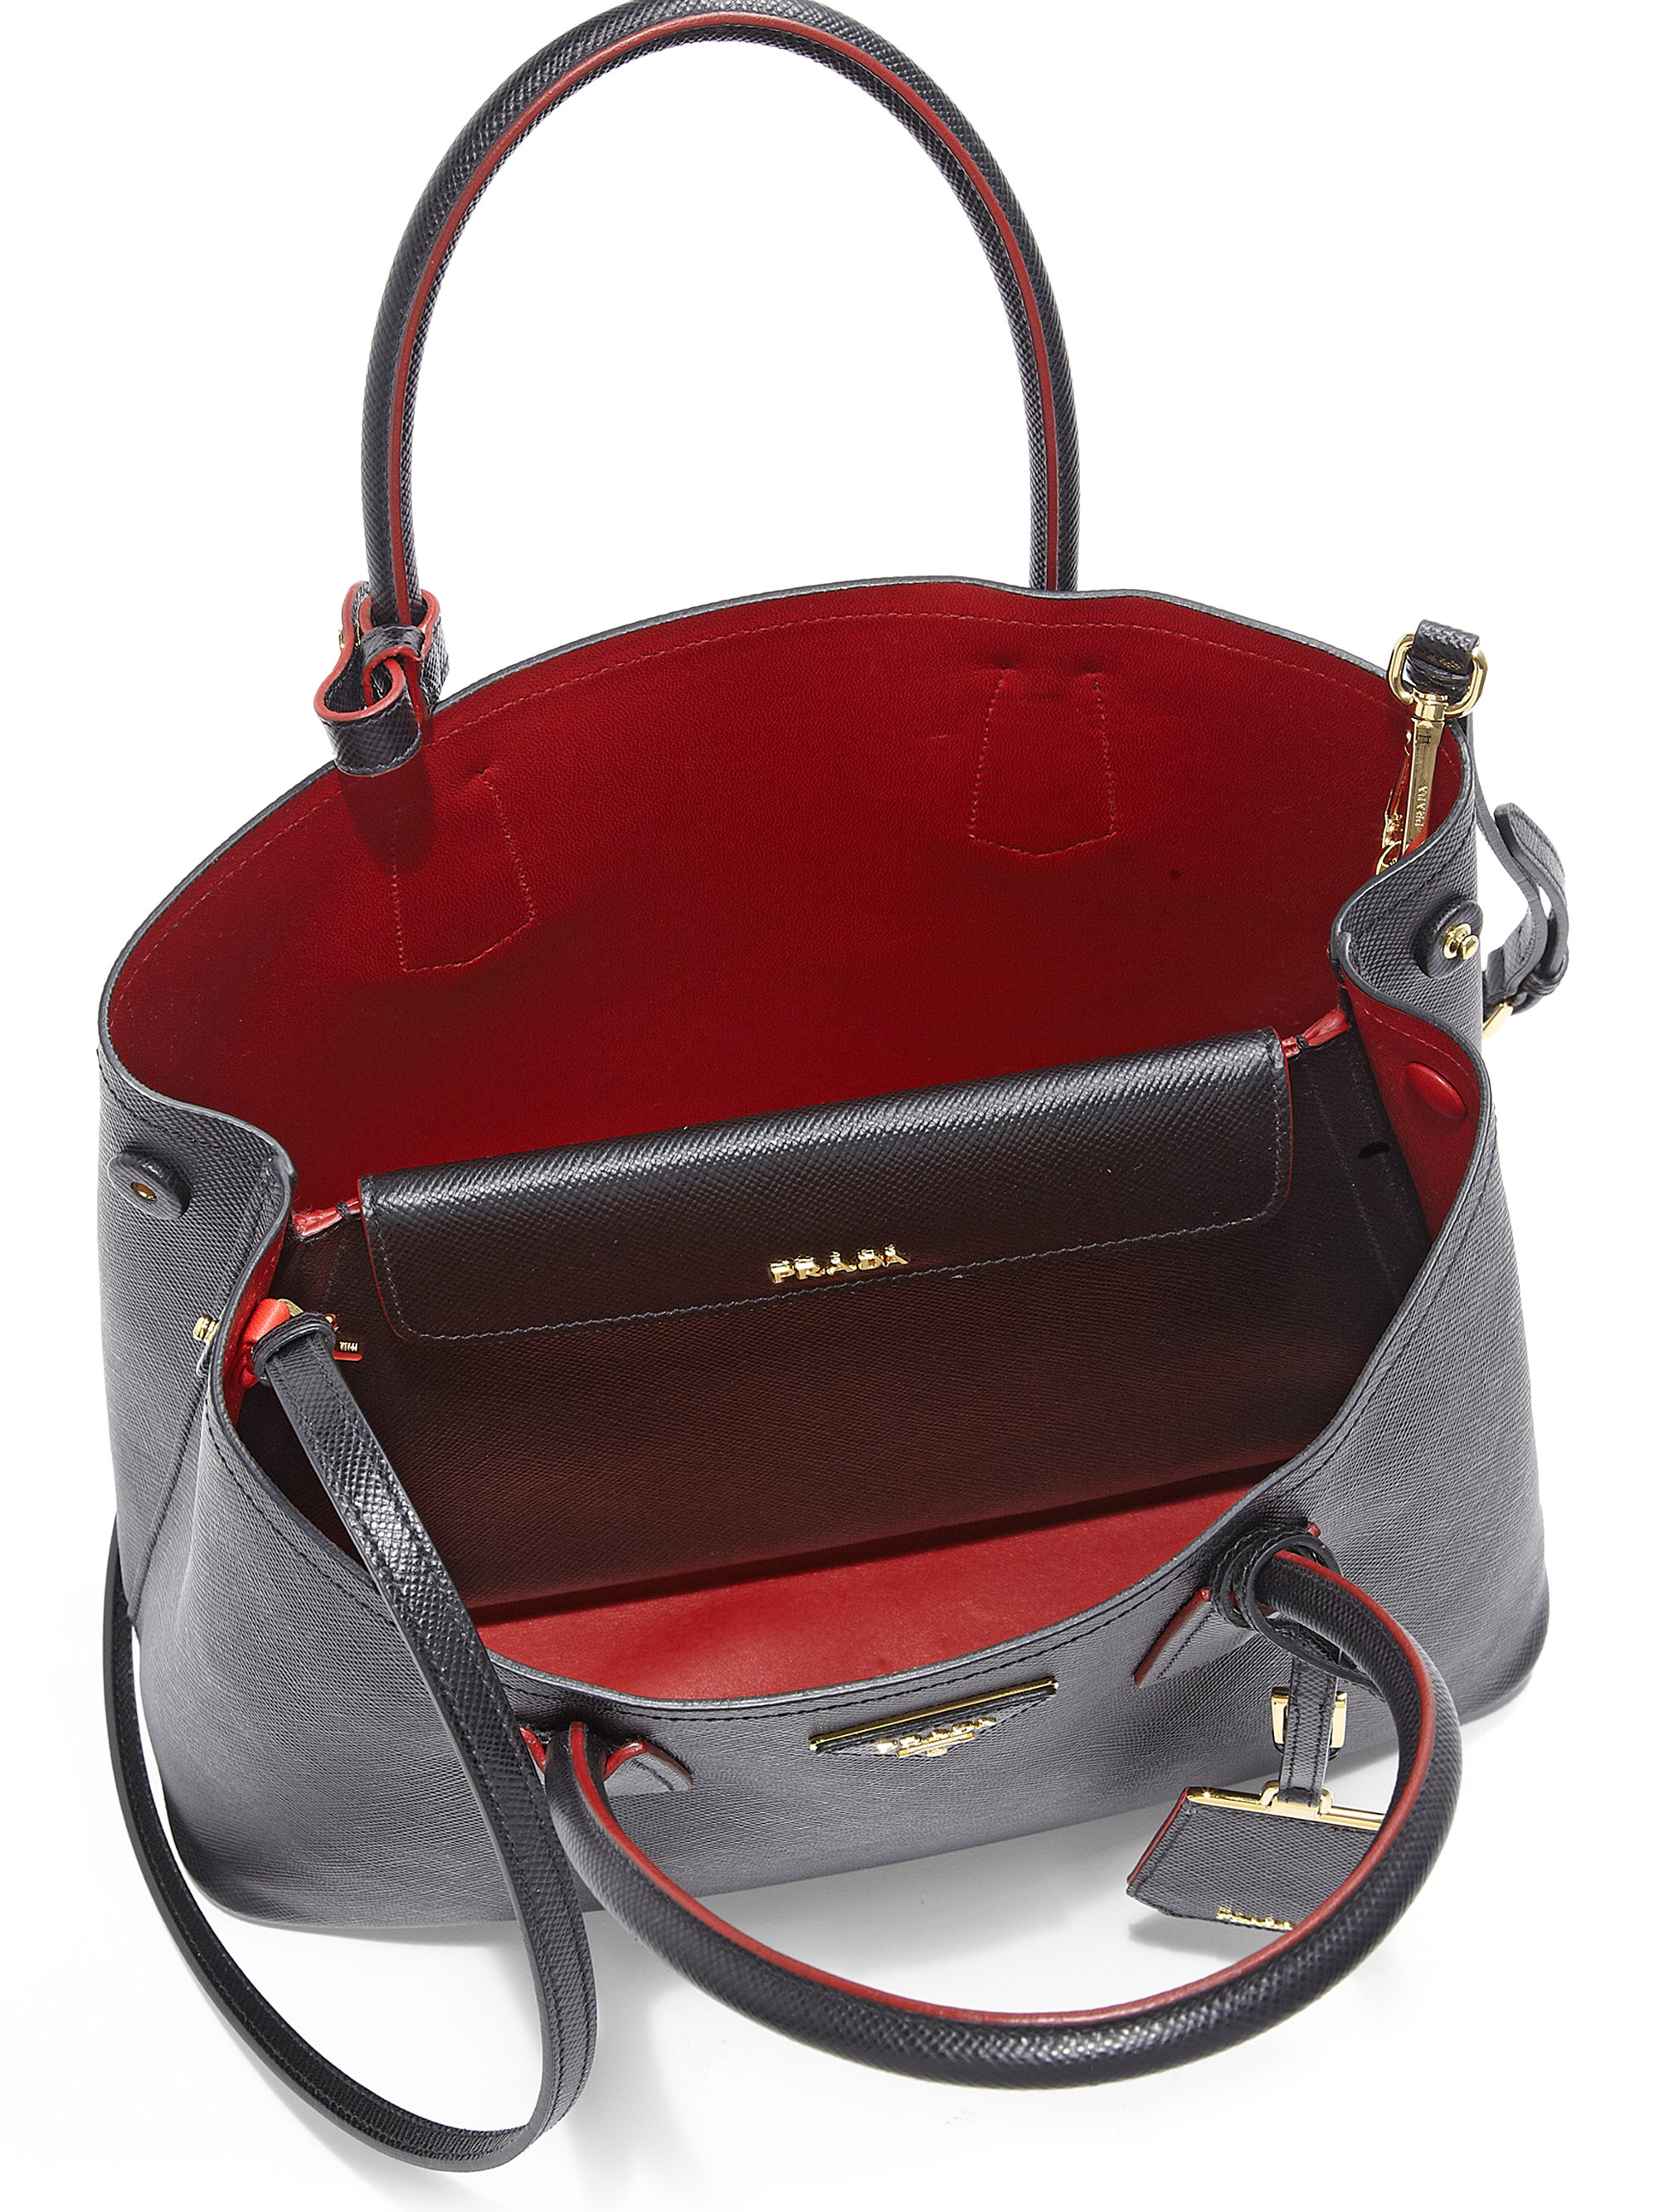 Prada Saffiano Cuir Small Double Bag in Red (BLACK-RED) | Lyst